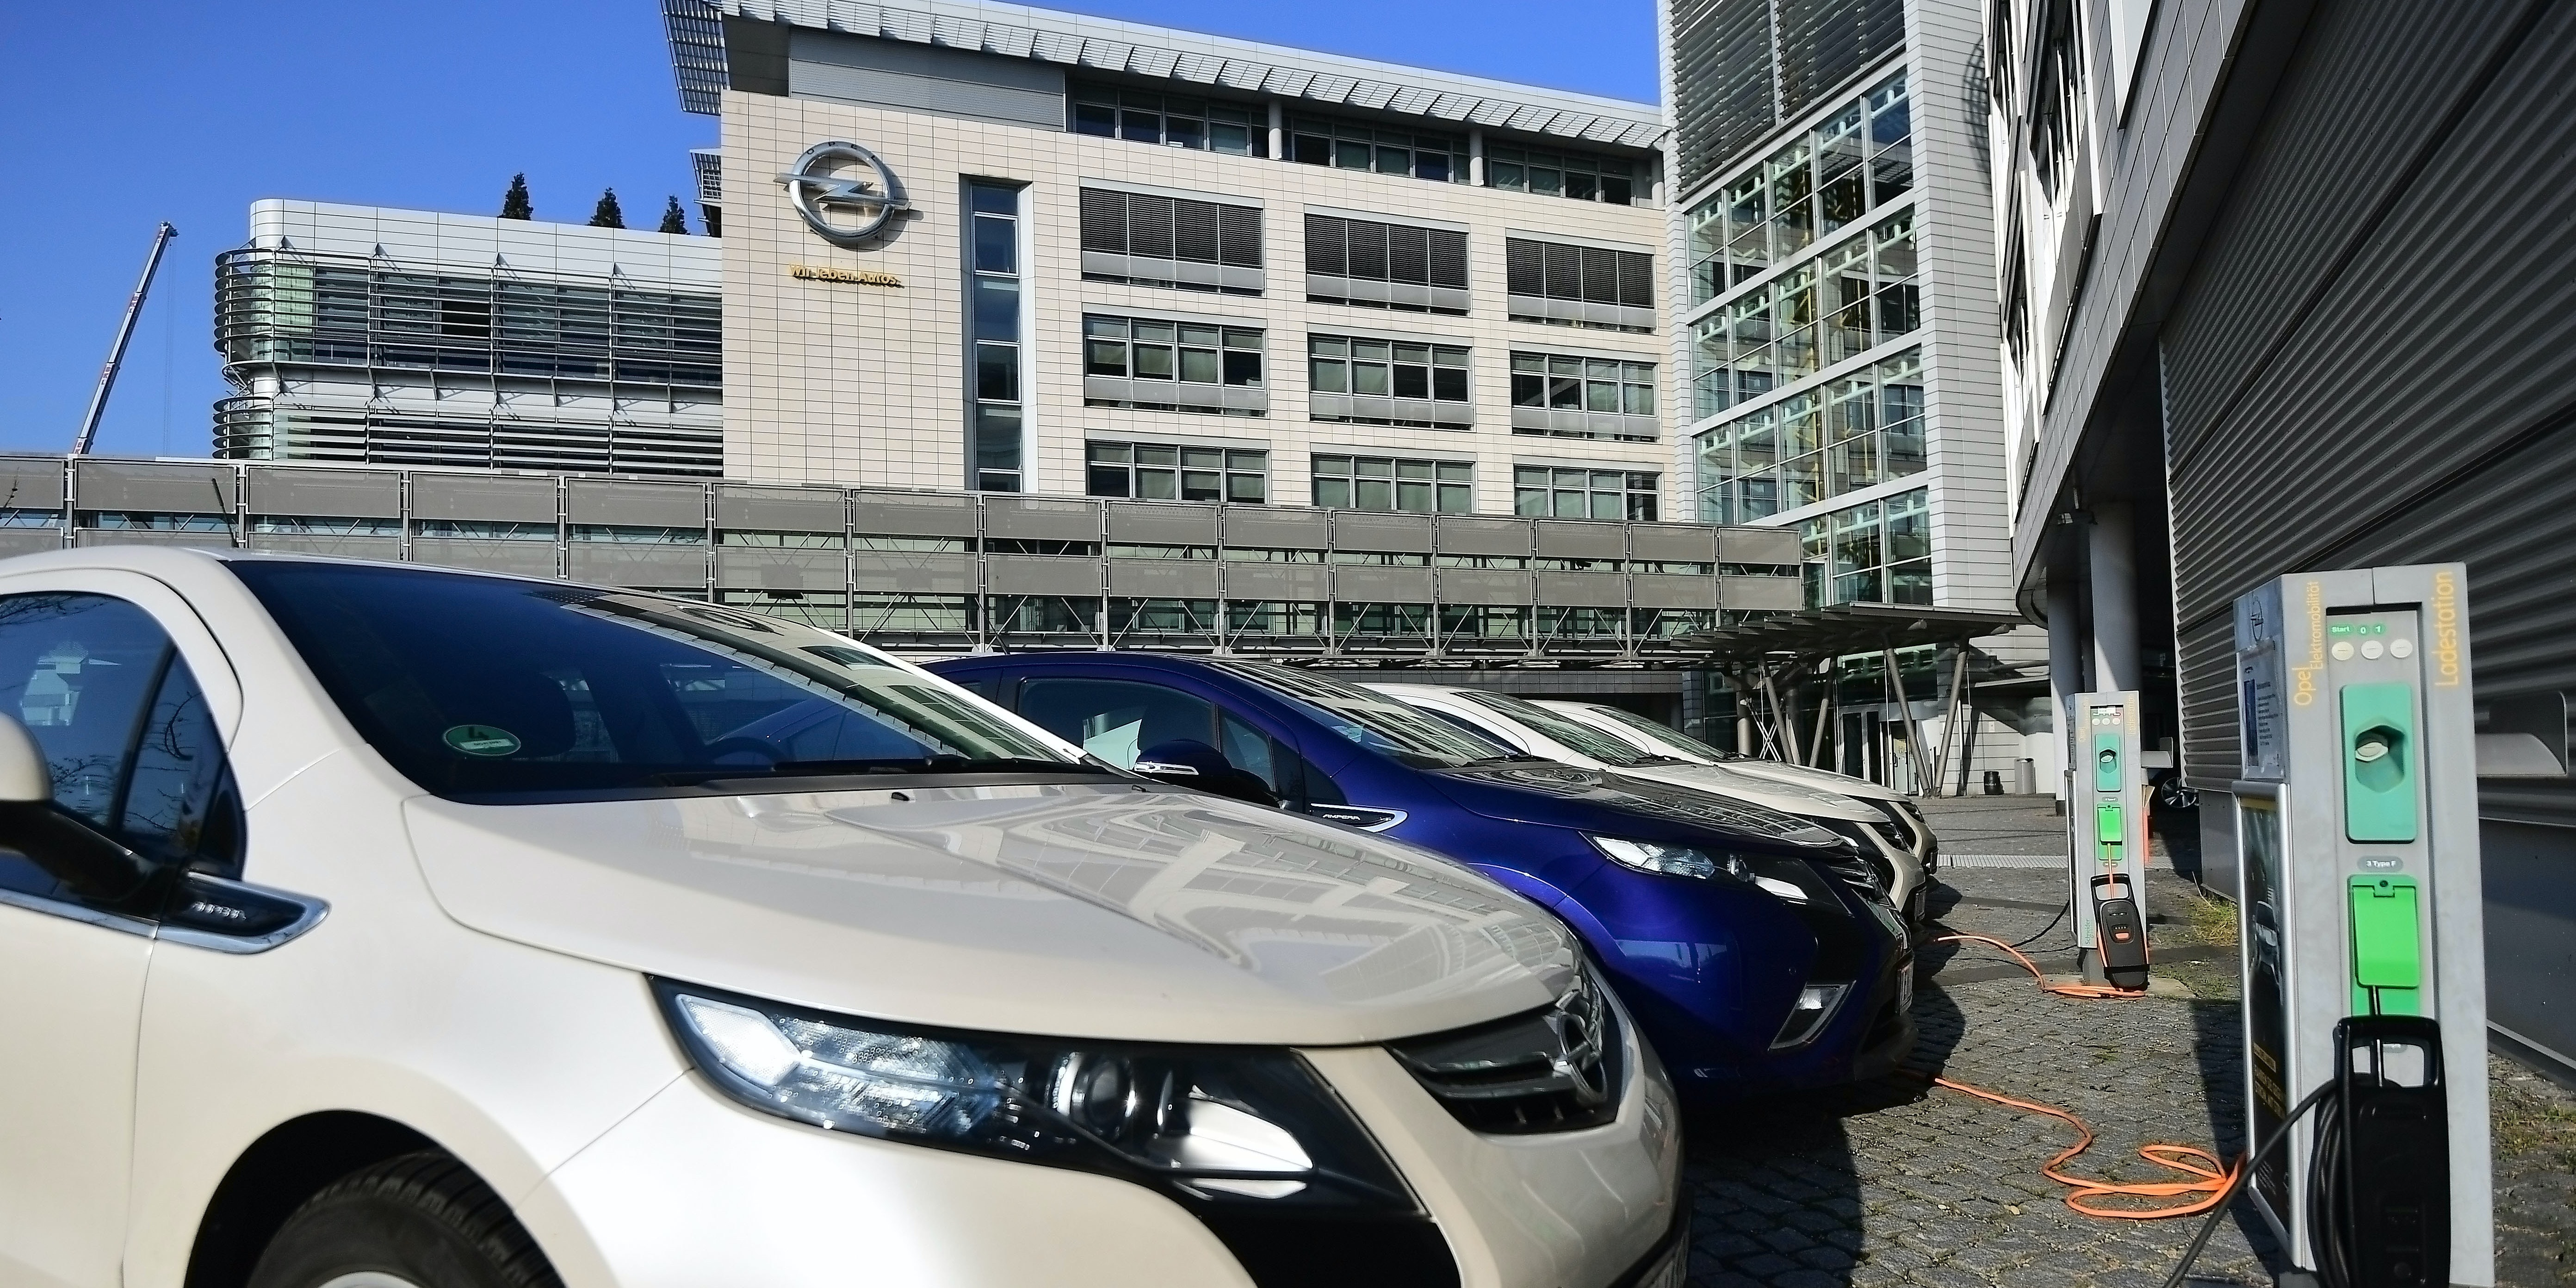 A general view to the Opel headquarters and 'Ampera' electric cars on February 15, 2017 in Ruesselsheim, Germany. PSA Peugeot Citroen is reportedly seeking to buy German automaker Opel from its parent company General Motors. The acquisition would require the consent of the German government, which would likely mean negotiations over job safeguards for Opel workers. General Motors has owned Opel since 1929.